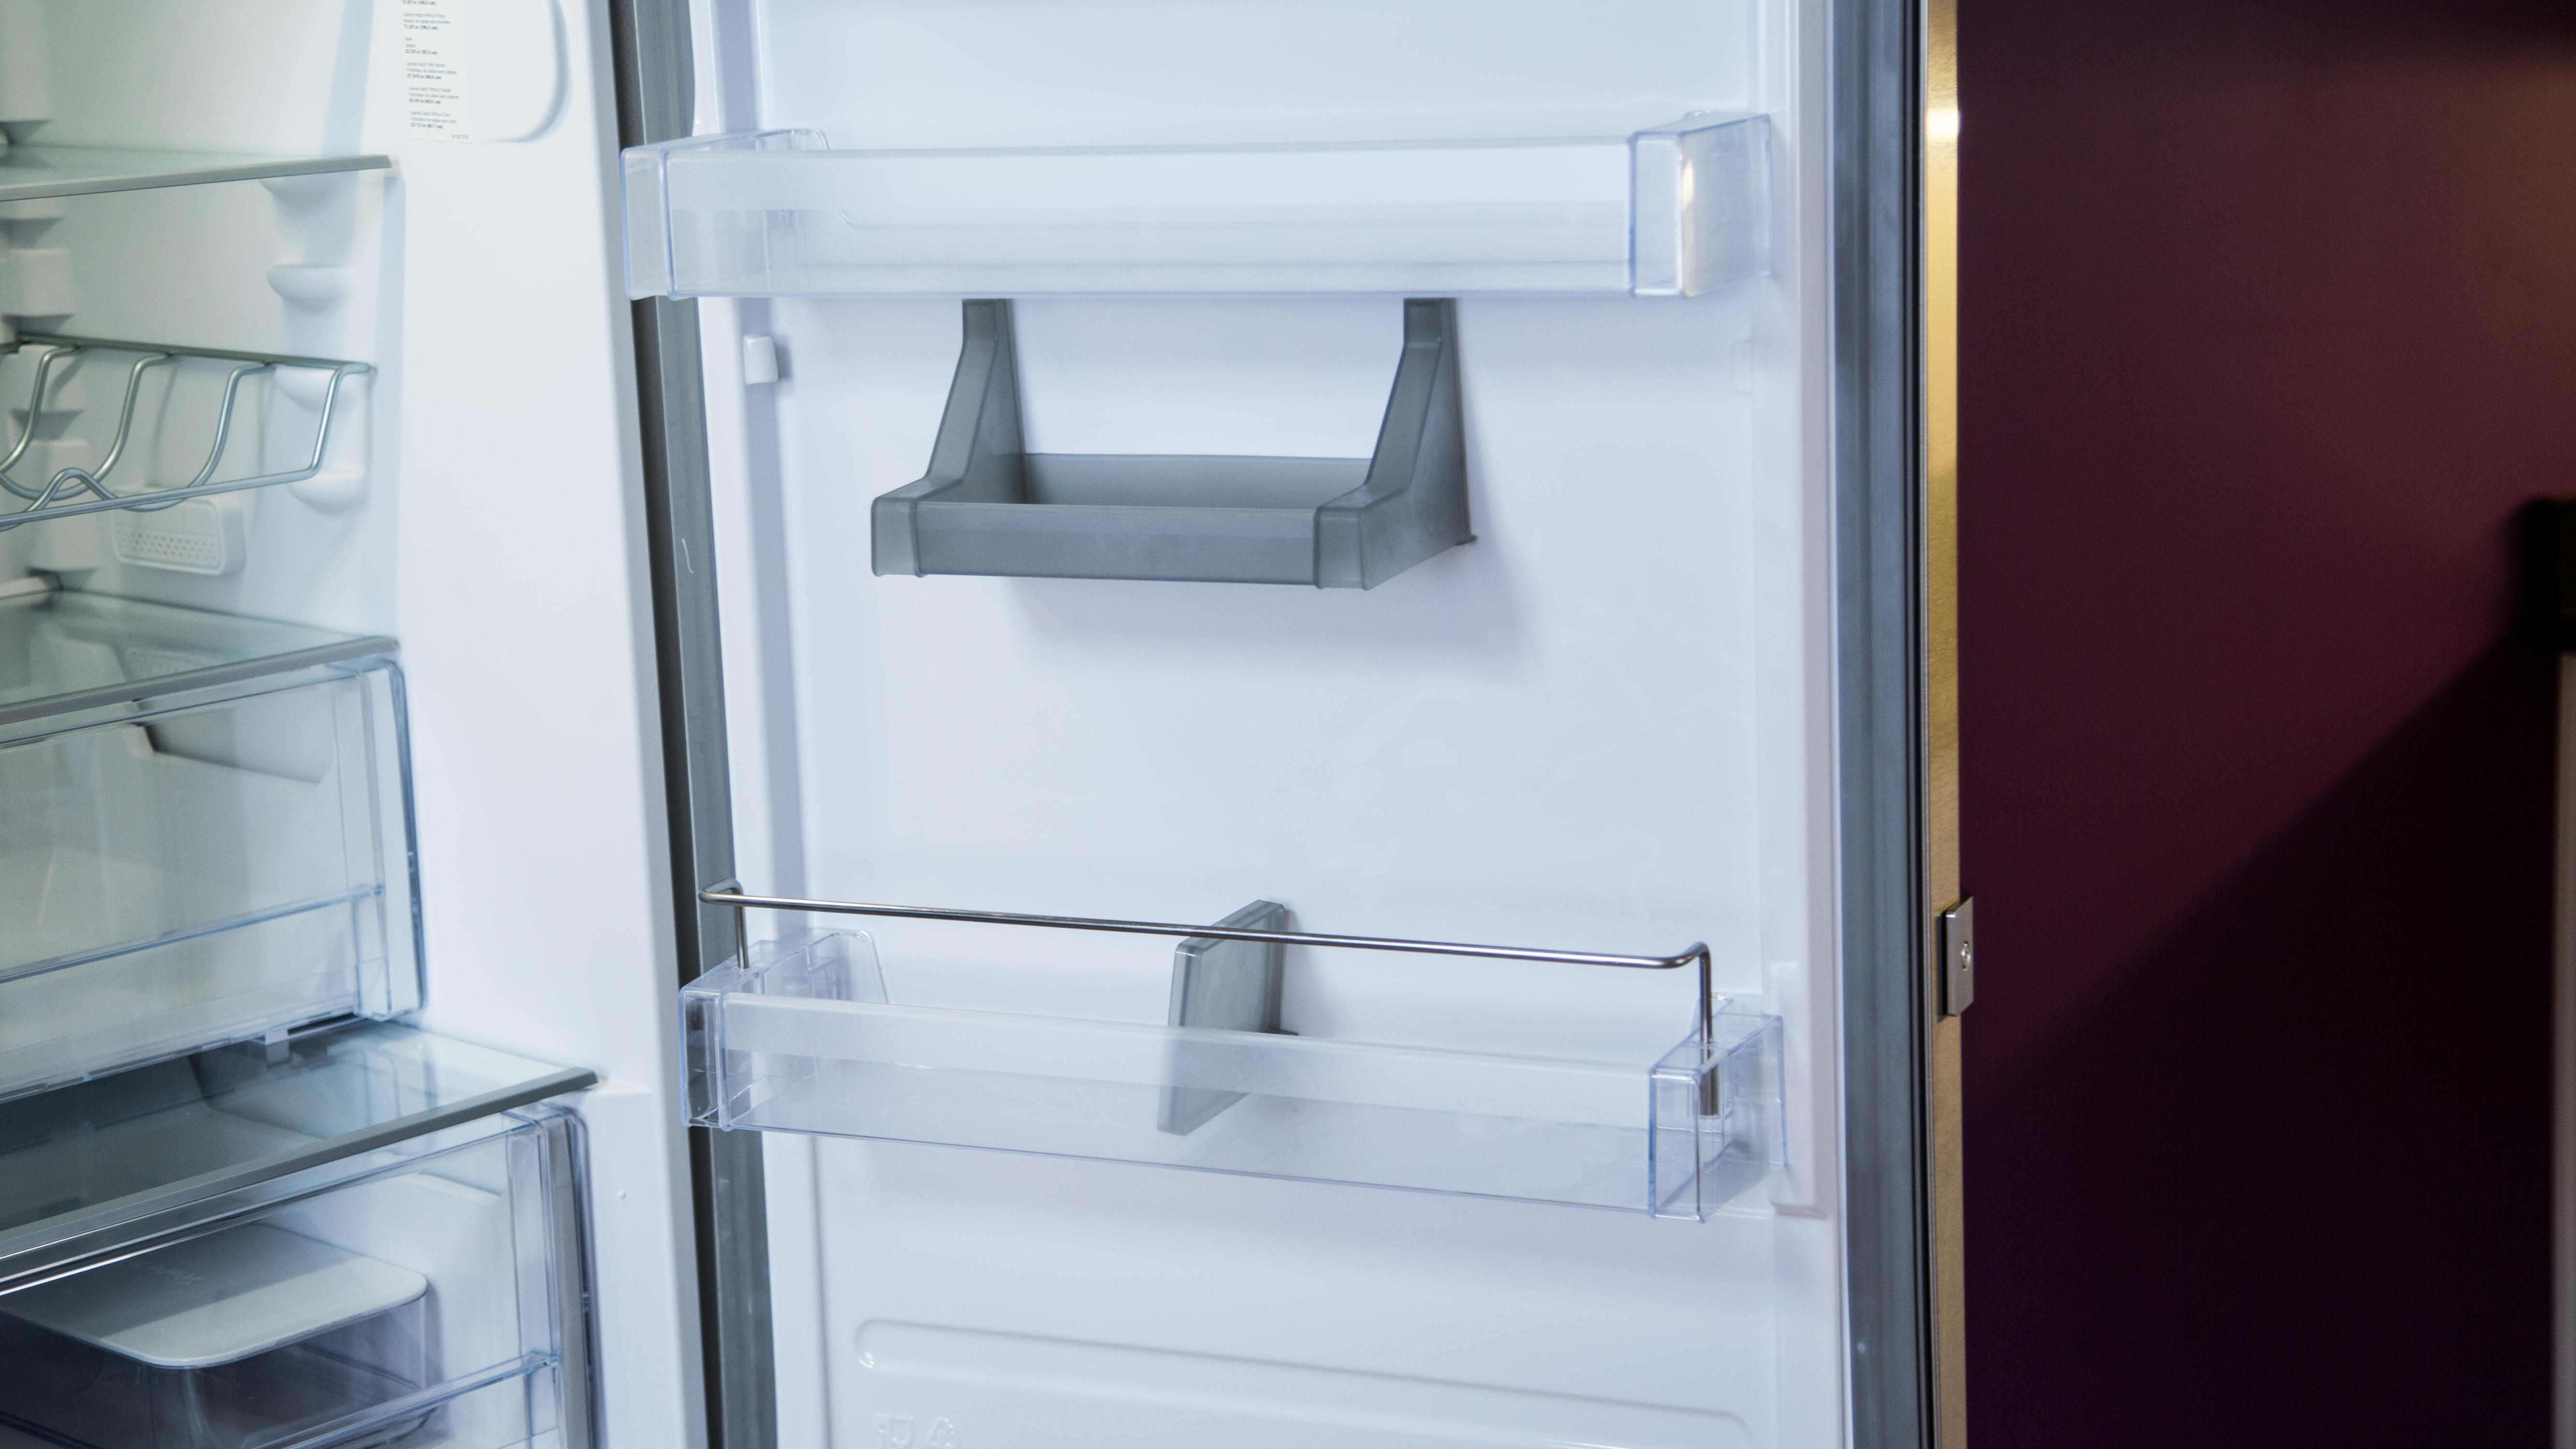 What to do when your refrigerator door won't stay closed - CNET